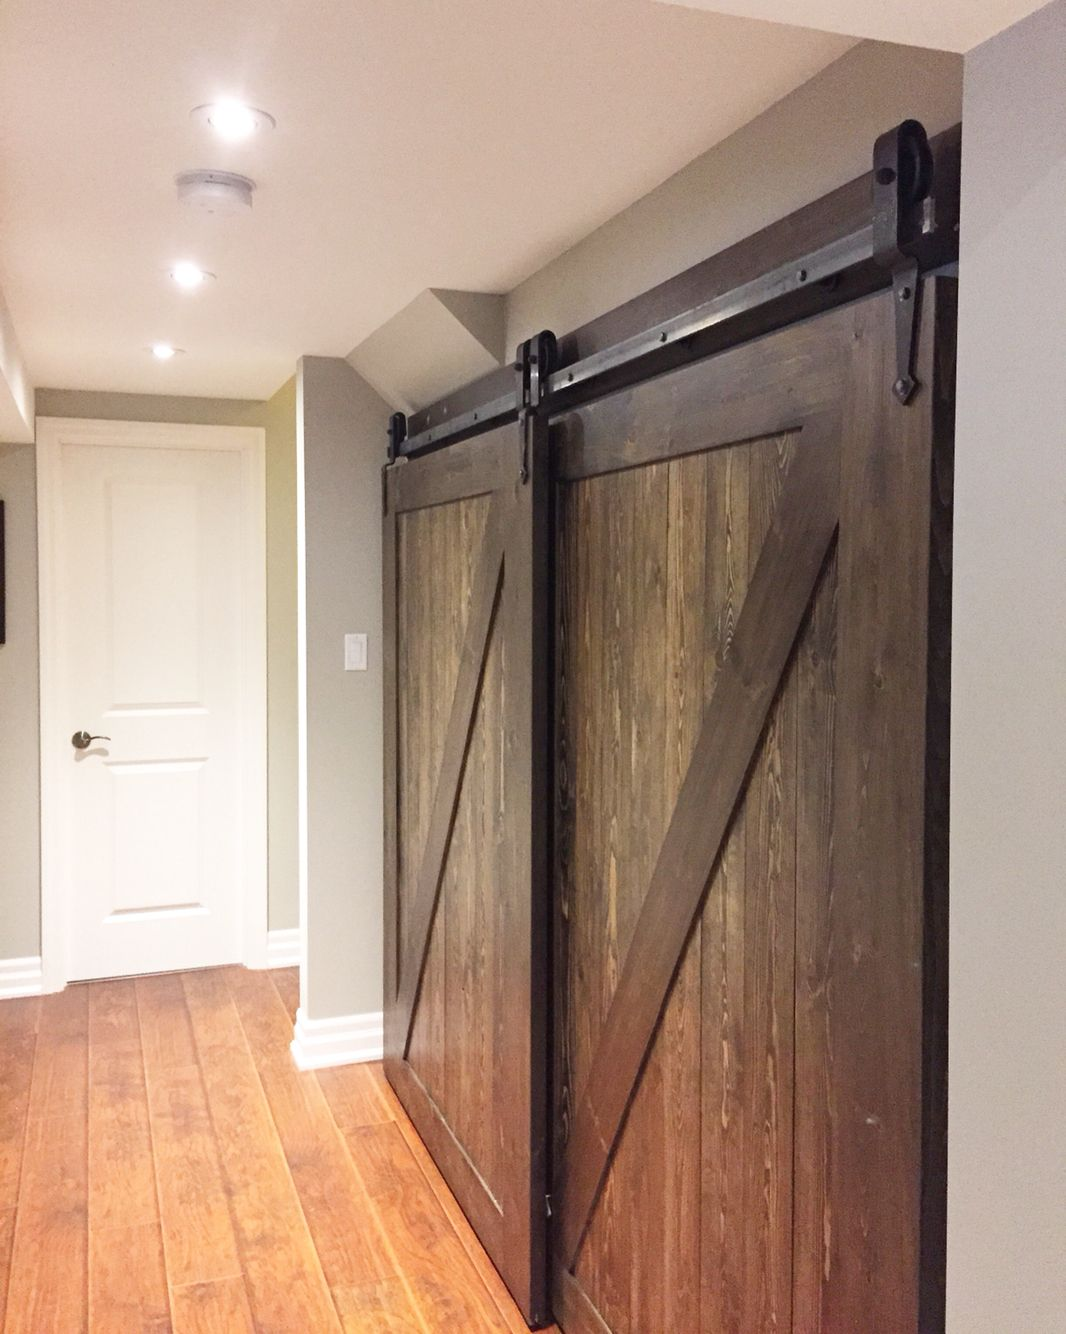 Arrowhead Style Bypass Barn Door Hardware To Hide Storage